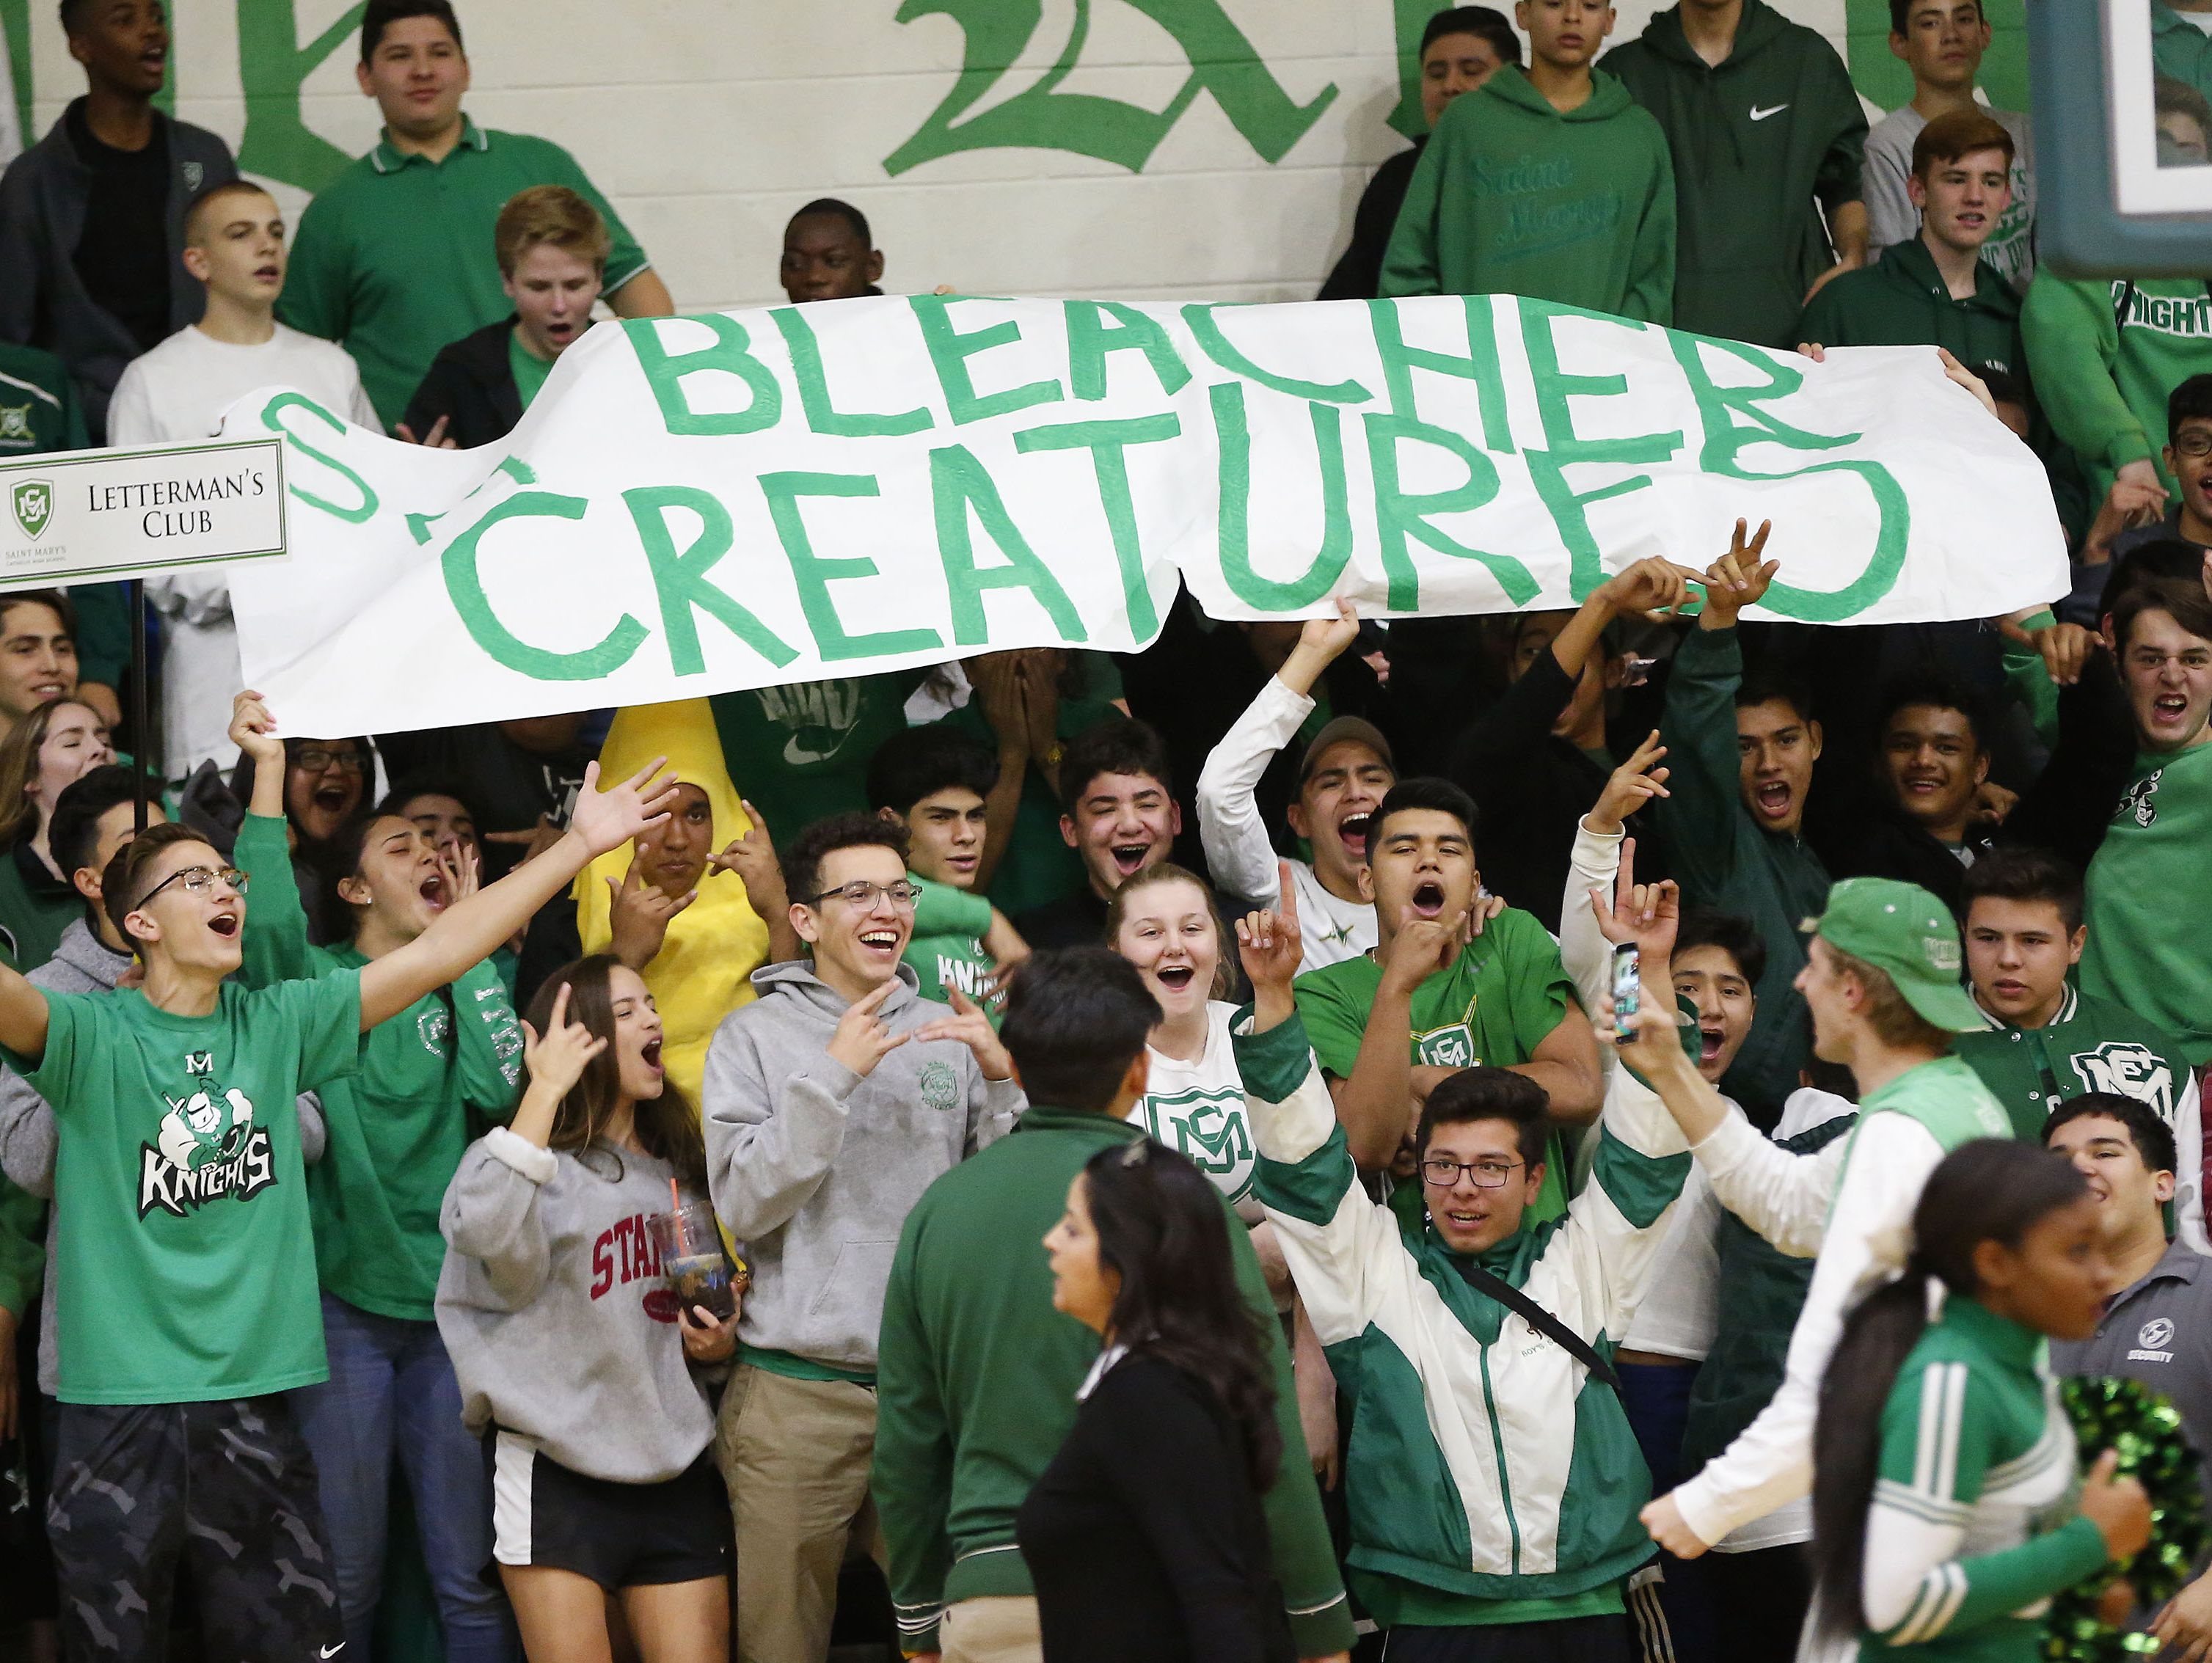 """St. Mary's """"Bleacher Creatures"""" cheer during a game against Shadow Muntain at the St. Mary's High School gym in Phoenix, Ariz, Jan. 24, 2017."""